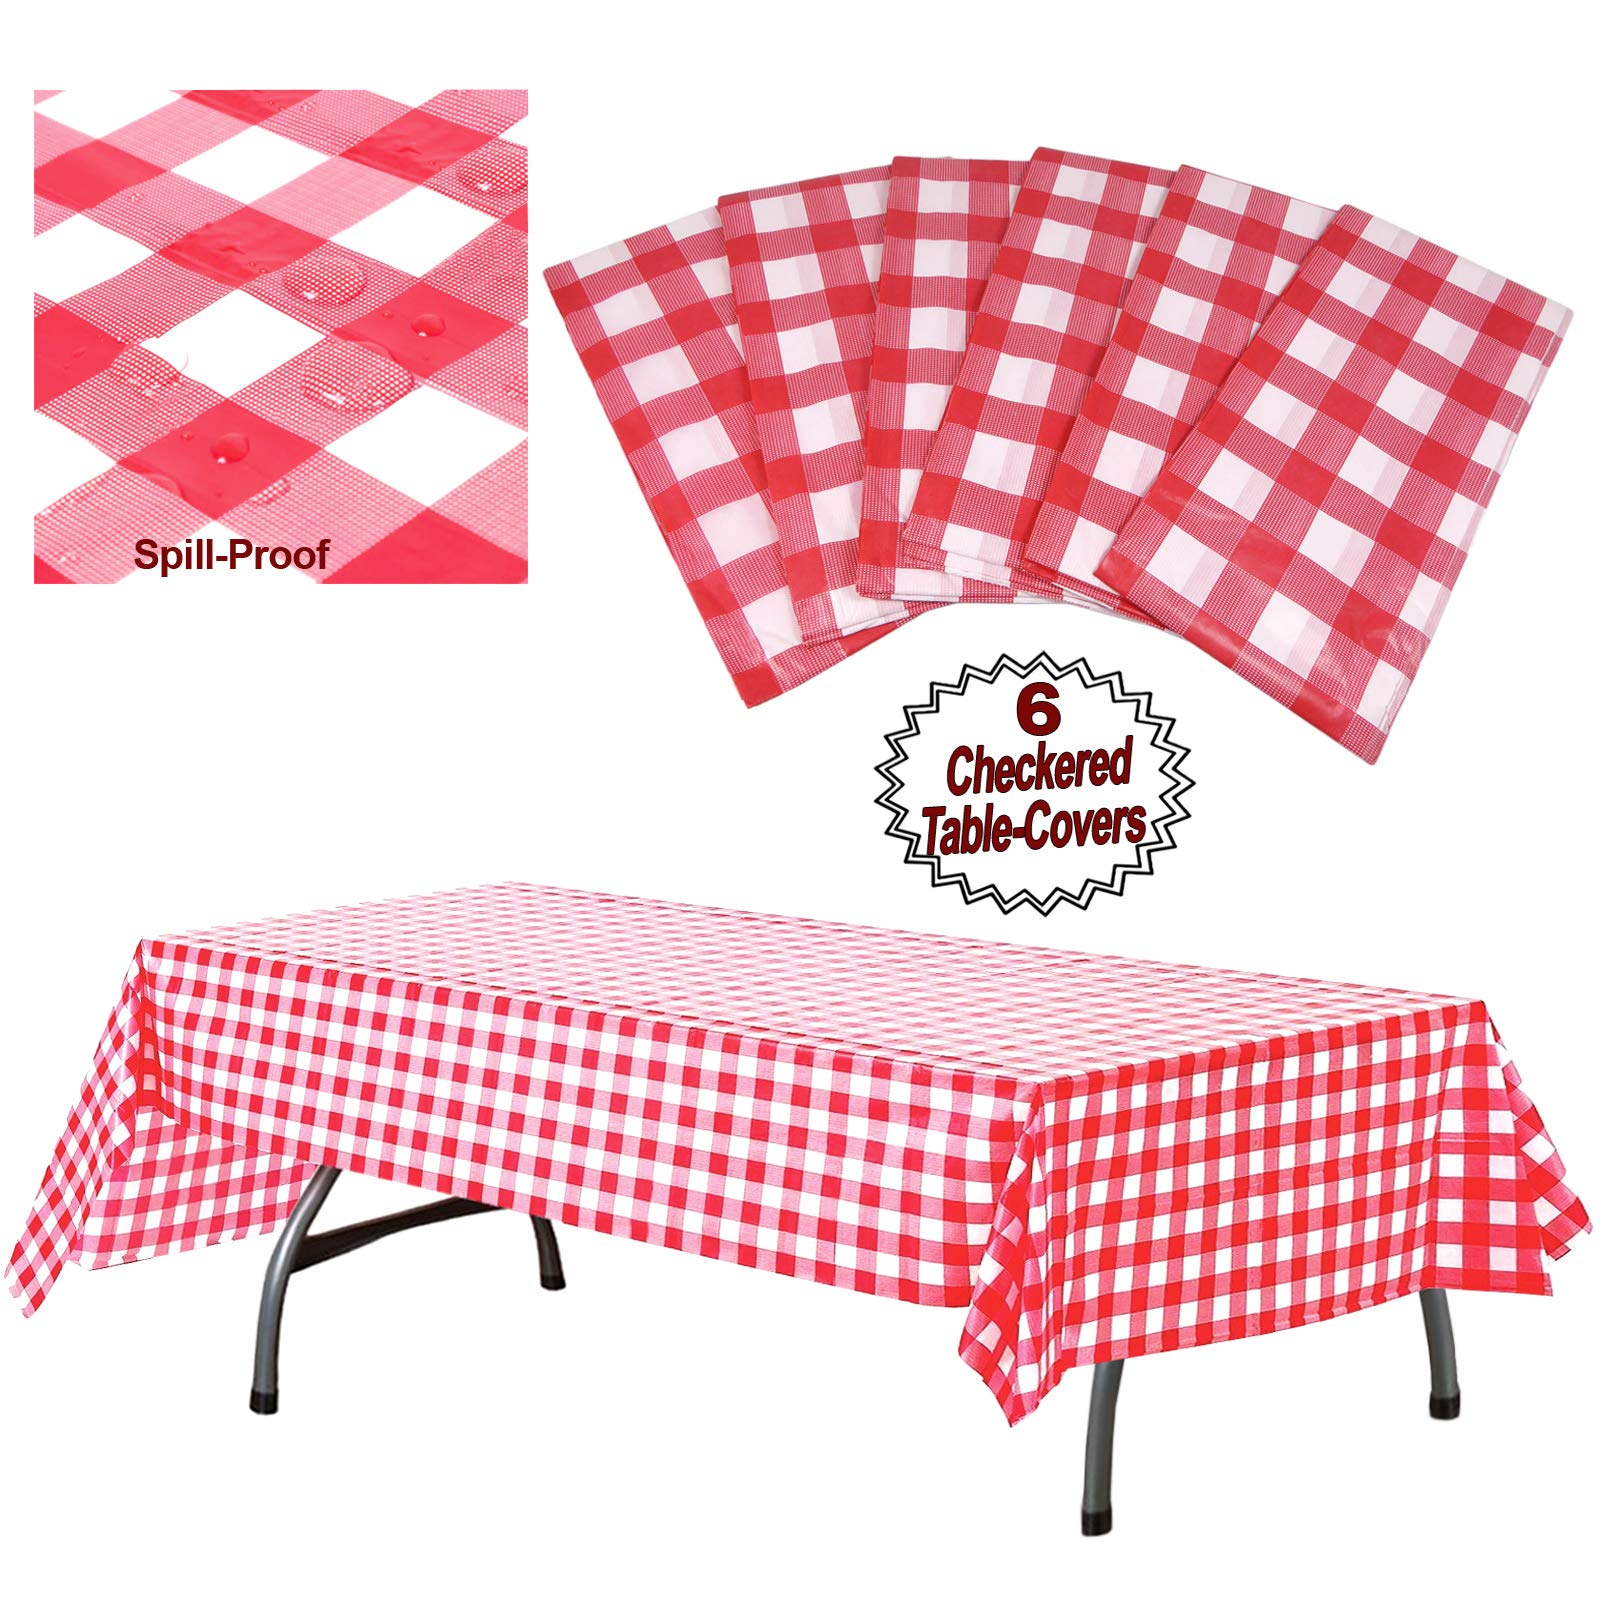 Plastic Checkered Tablecloth | 6 Pcs Pack - 54'' Wide x 108'' Long | Red and White Picnic Disposable Table Cover | Rectangular Gingham Tablecover for Birthdays, Carnivals, Parties | By Anapoliz by Anapoliz (Image #1)